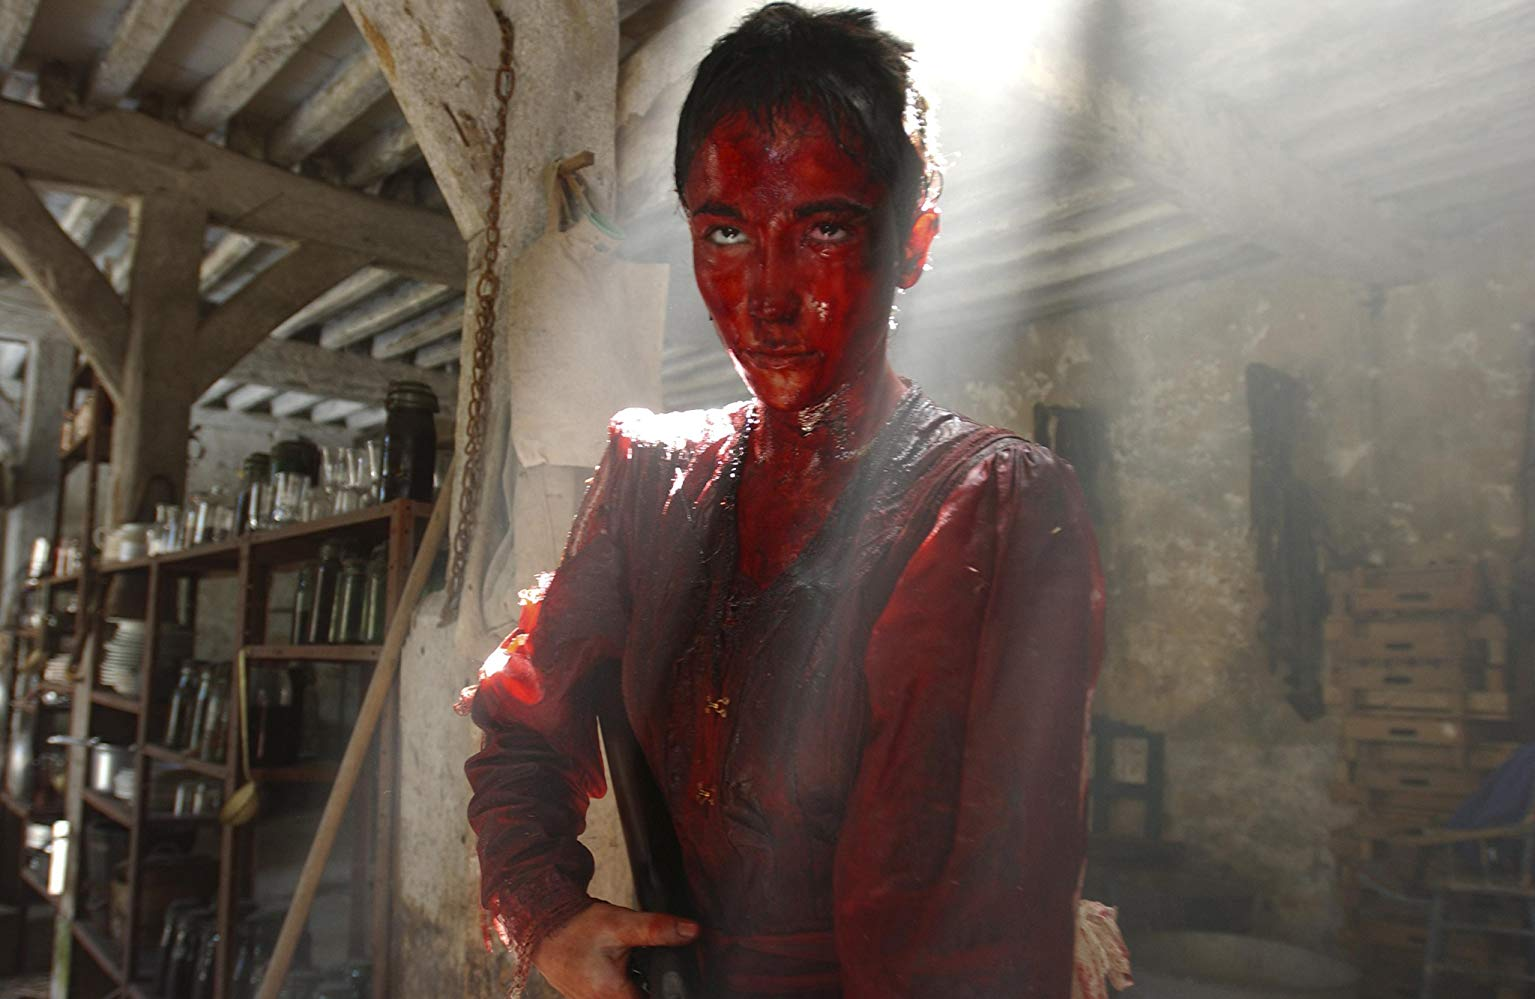 Karina Testa defends herself in the gore-drenched climax of Frontier(s) (2007)